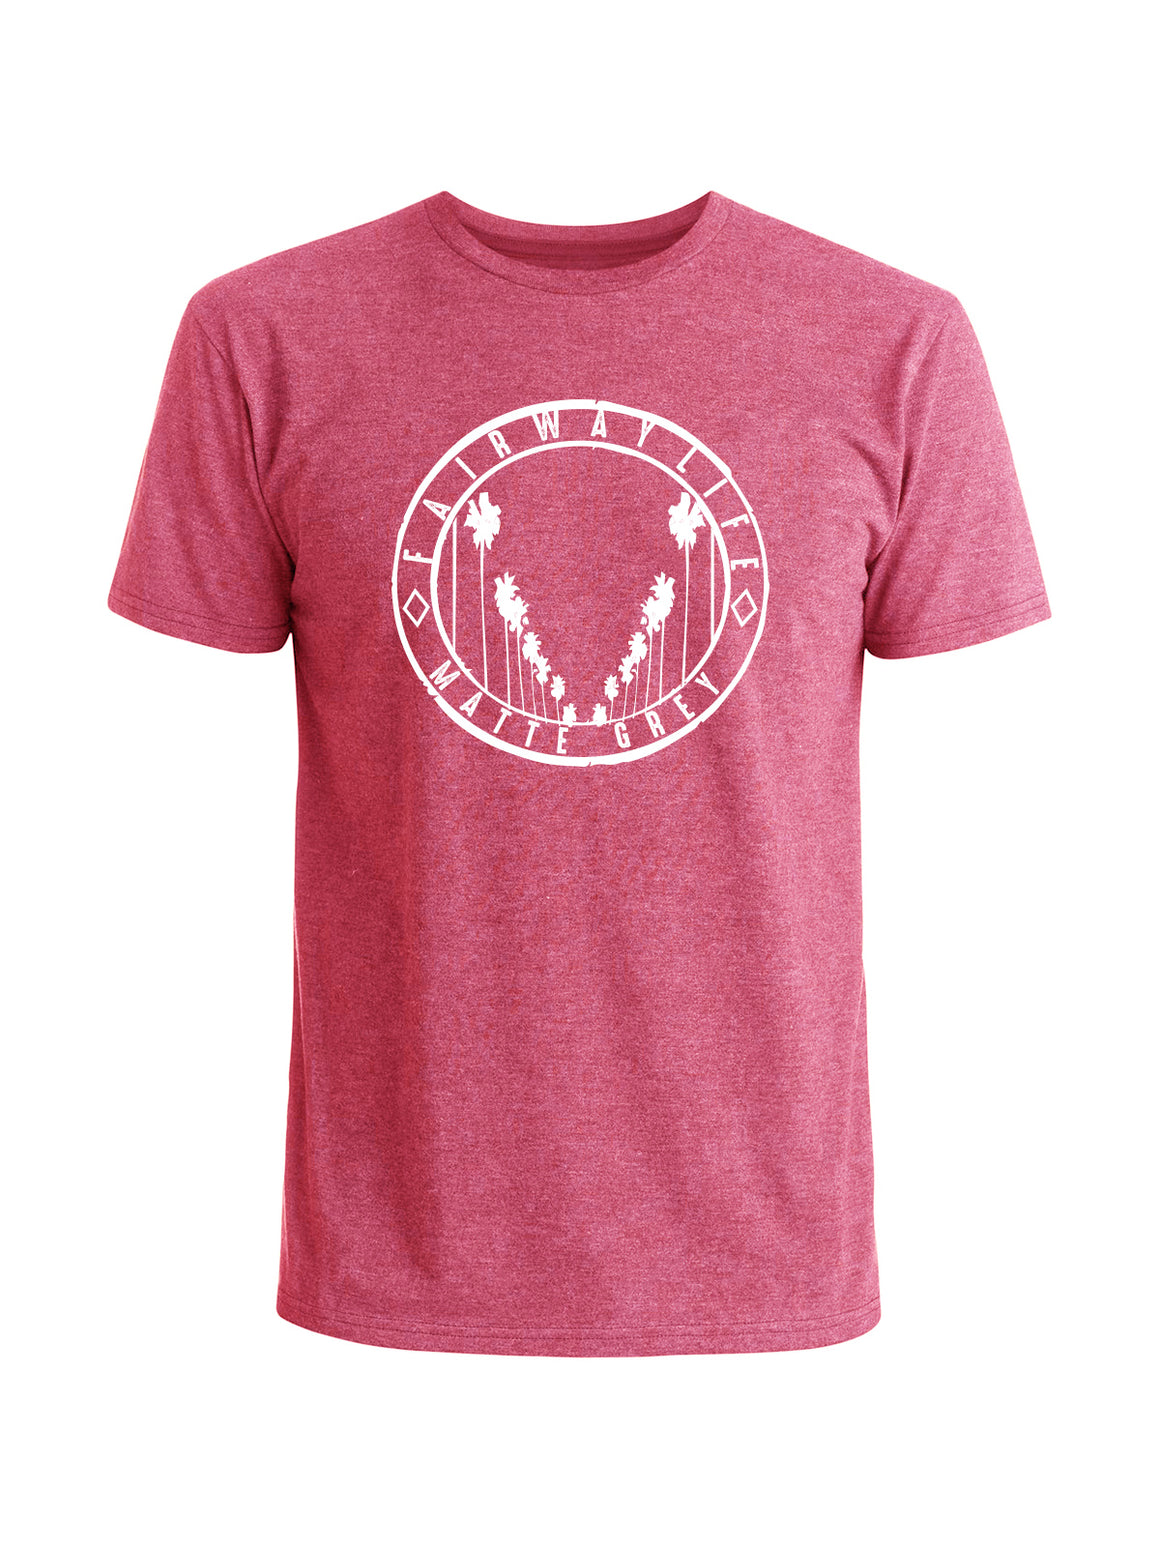 Fairway Life Tee Shirt - Desert Rose Heather